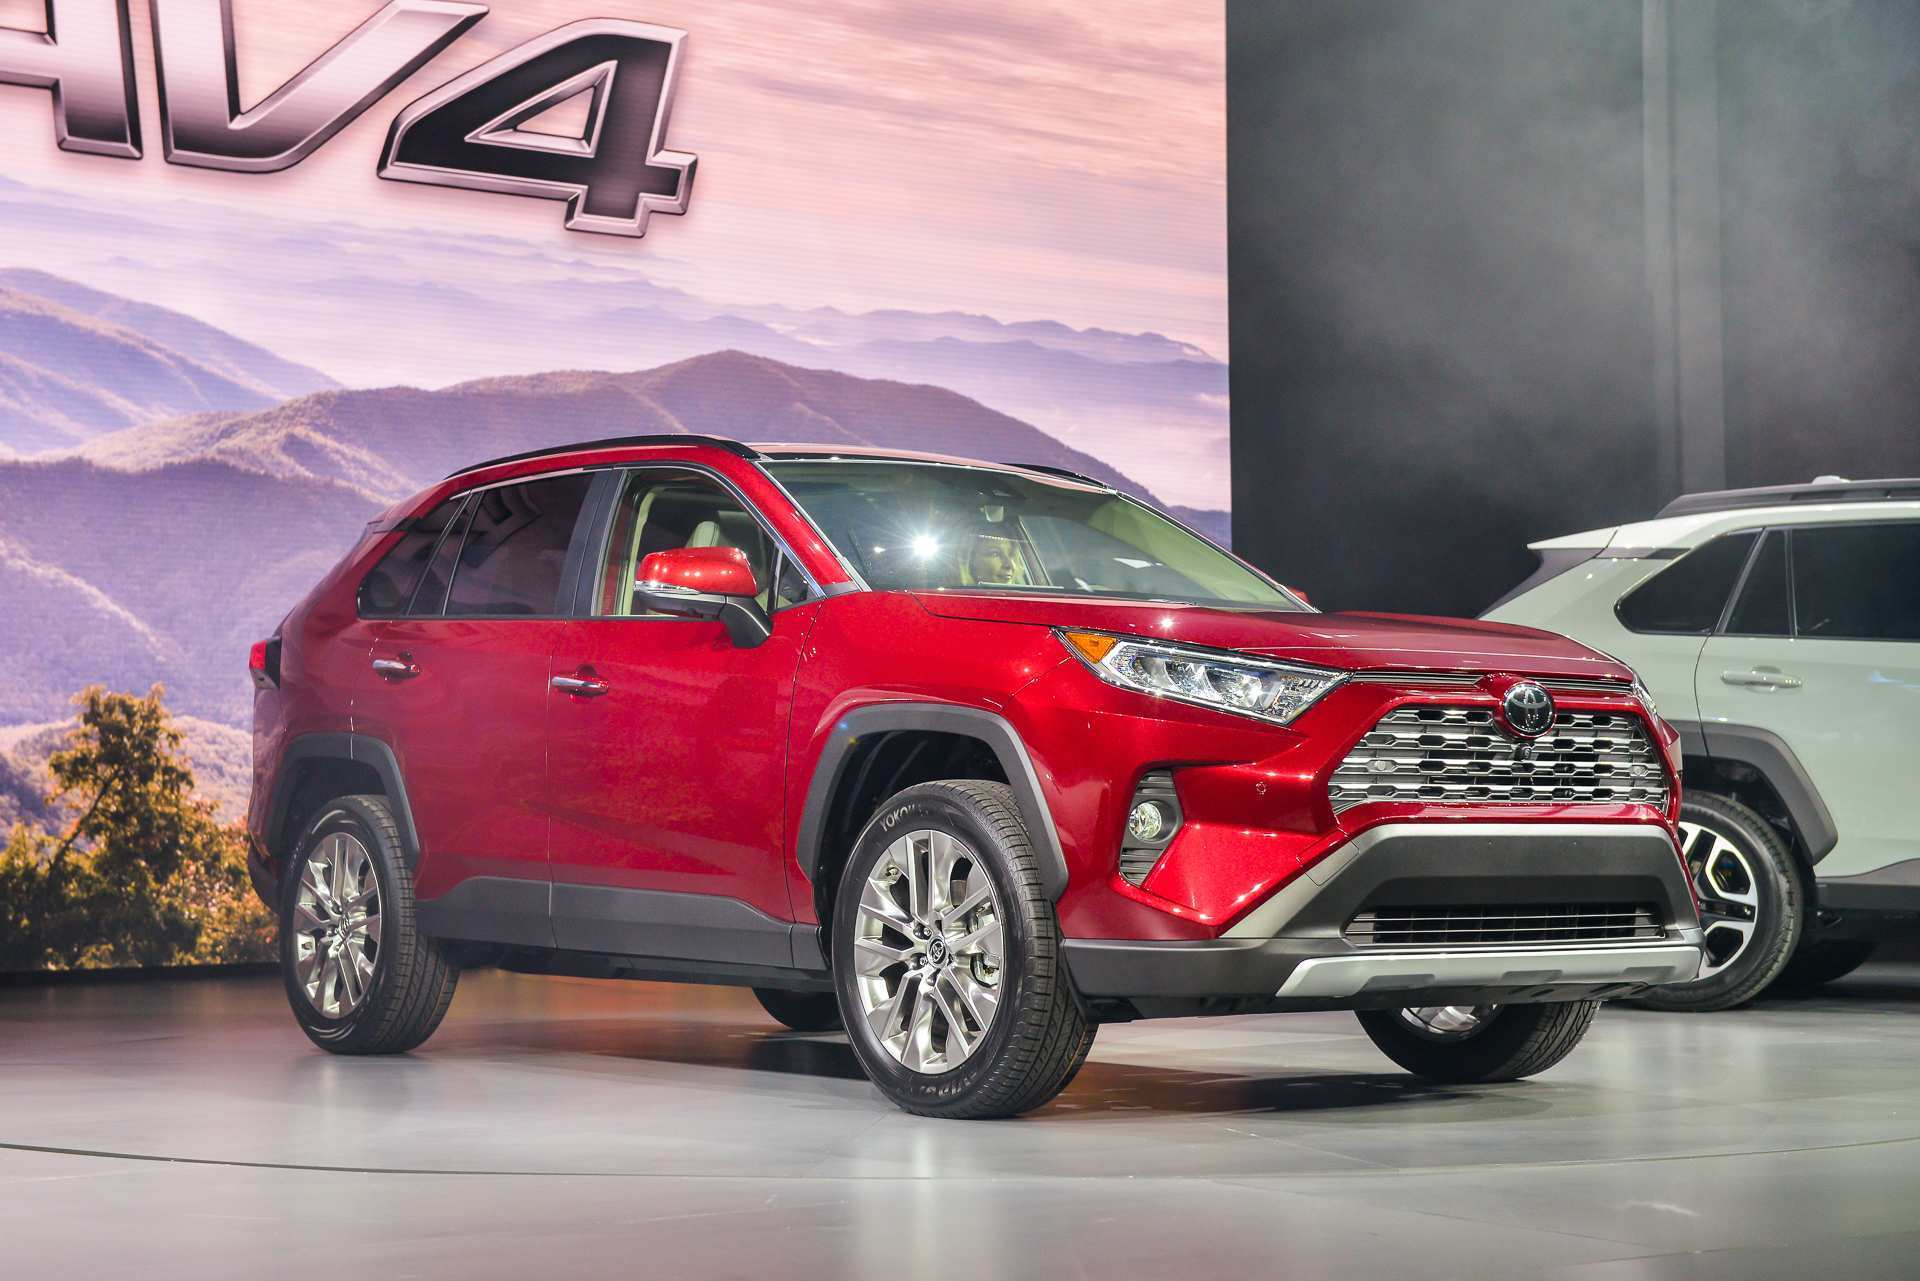 73 All New 2019 Toyota Redesign Price and Review with 2019 Toyota Redesign